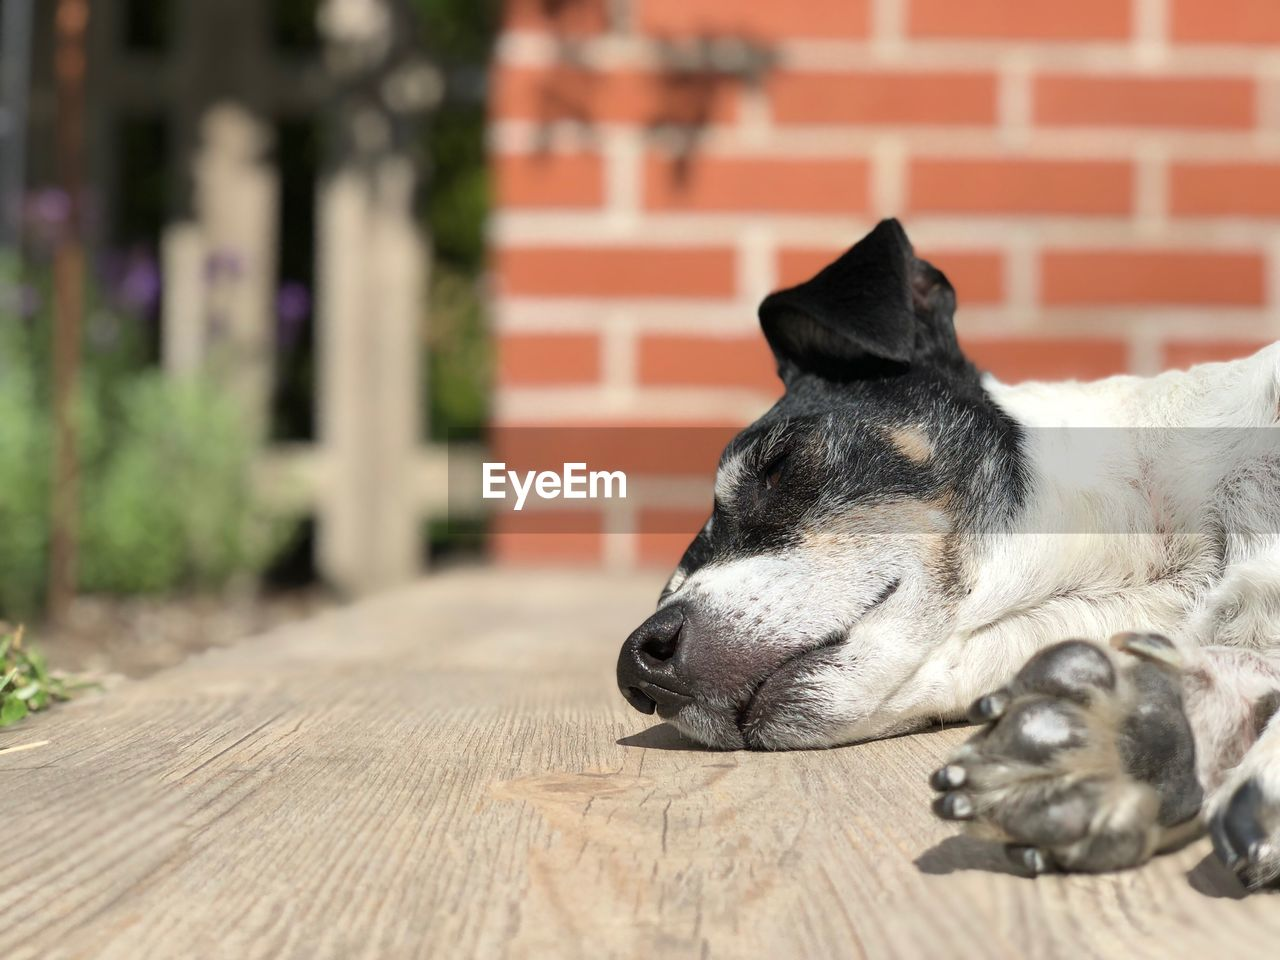 domestic, domestic animals, mammal, one animal, pets, animal themes, animal, dog, canine, vertebrate, relaxation, no people, focus on foreground, lying down, close-up, day, sleeping, resting, looking away, wood - material